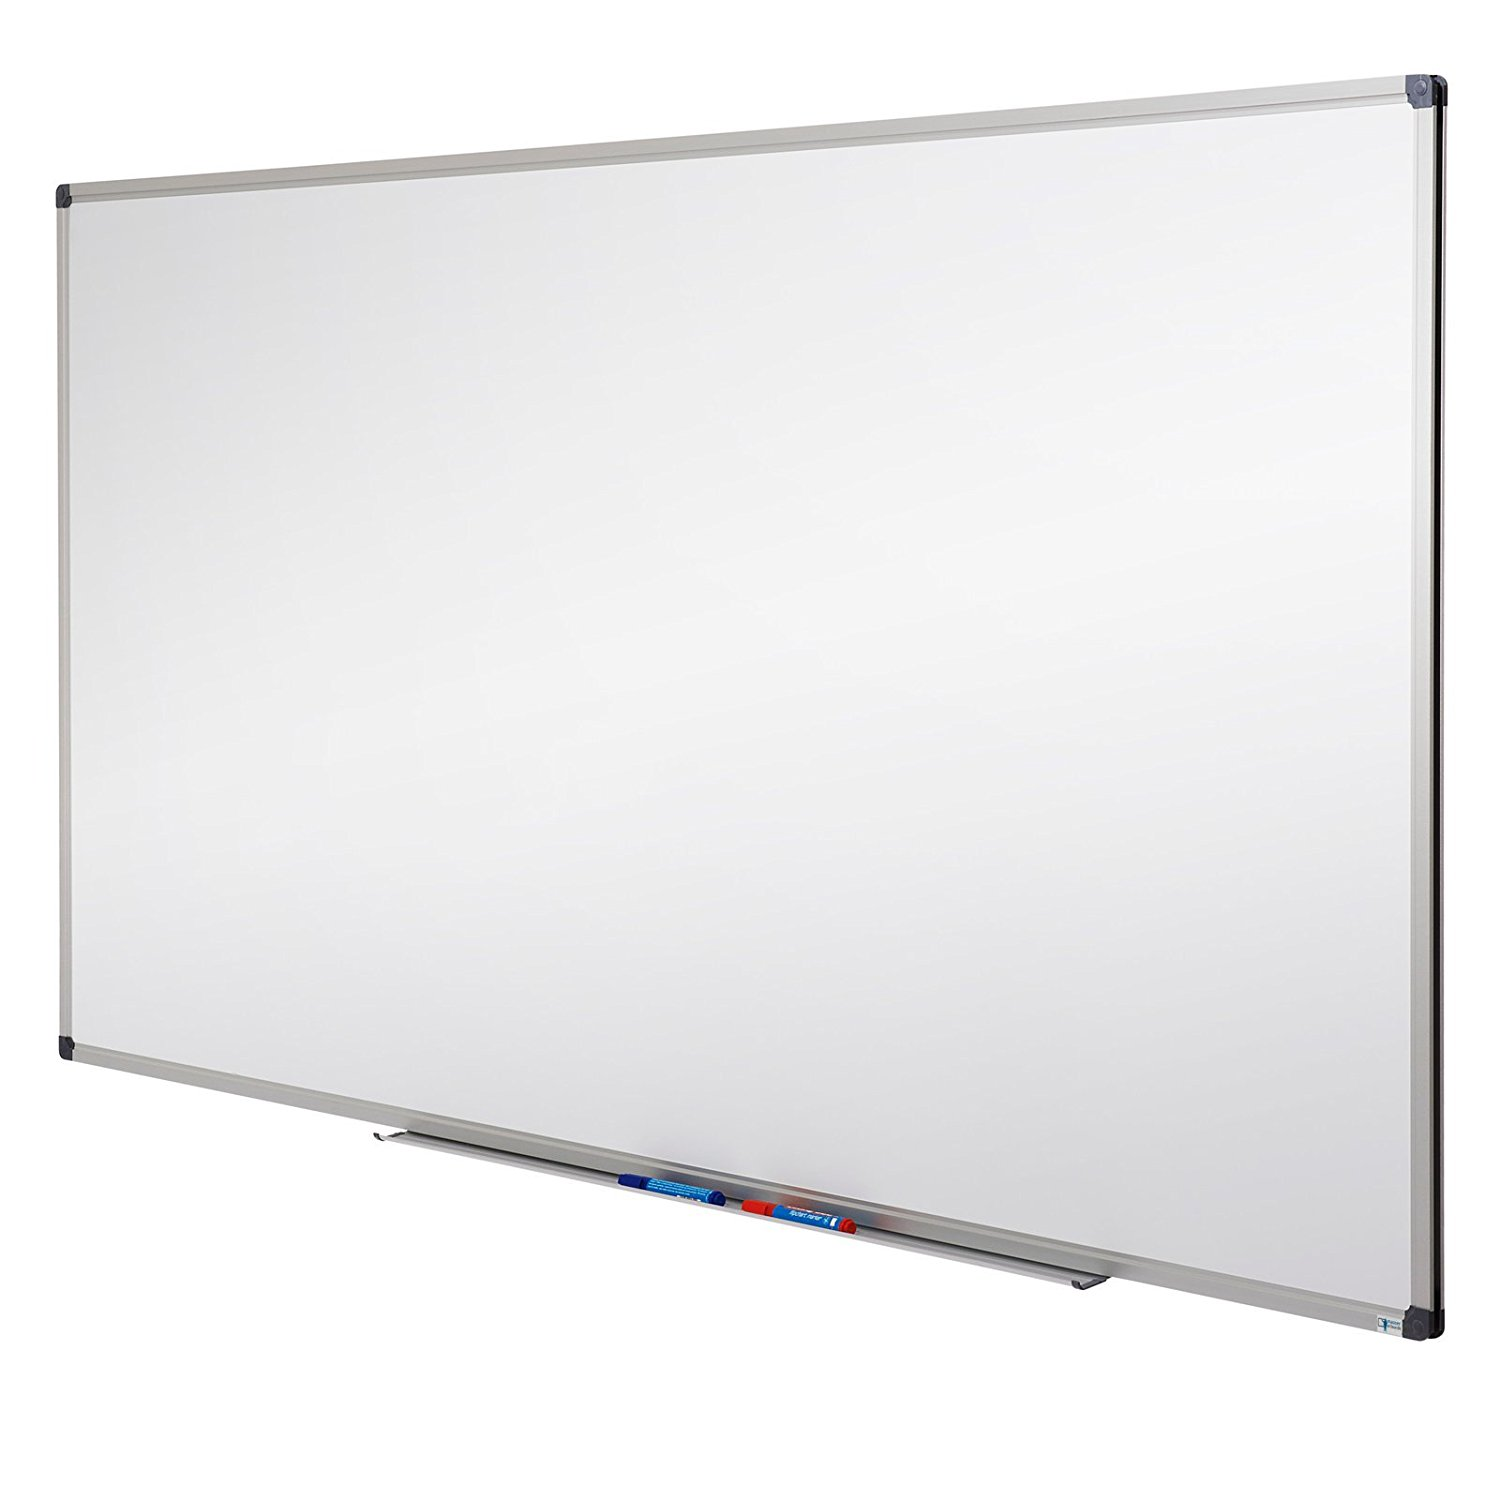 Merawat Whiteboard - Amazon.com